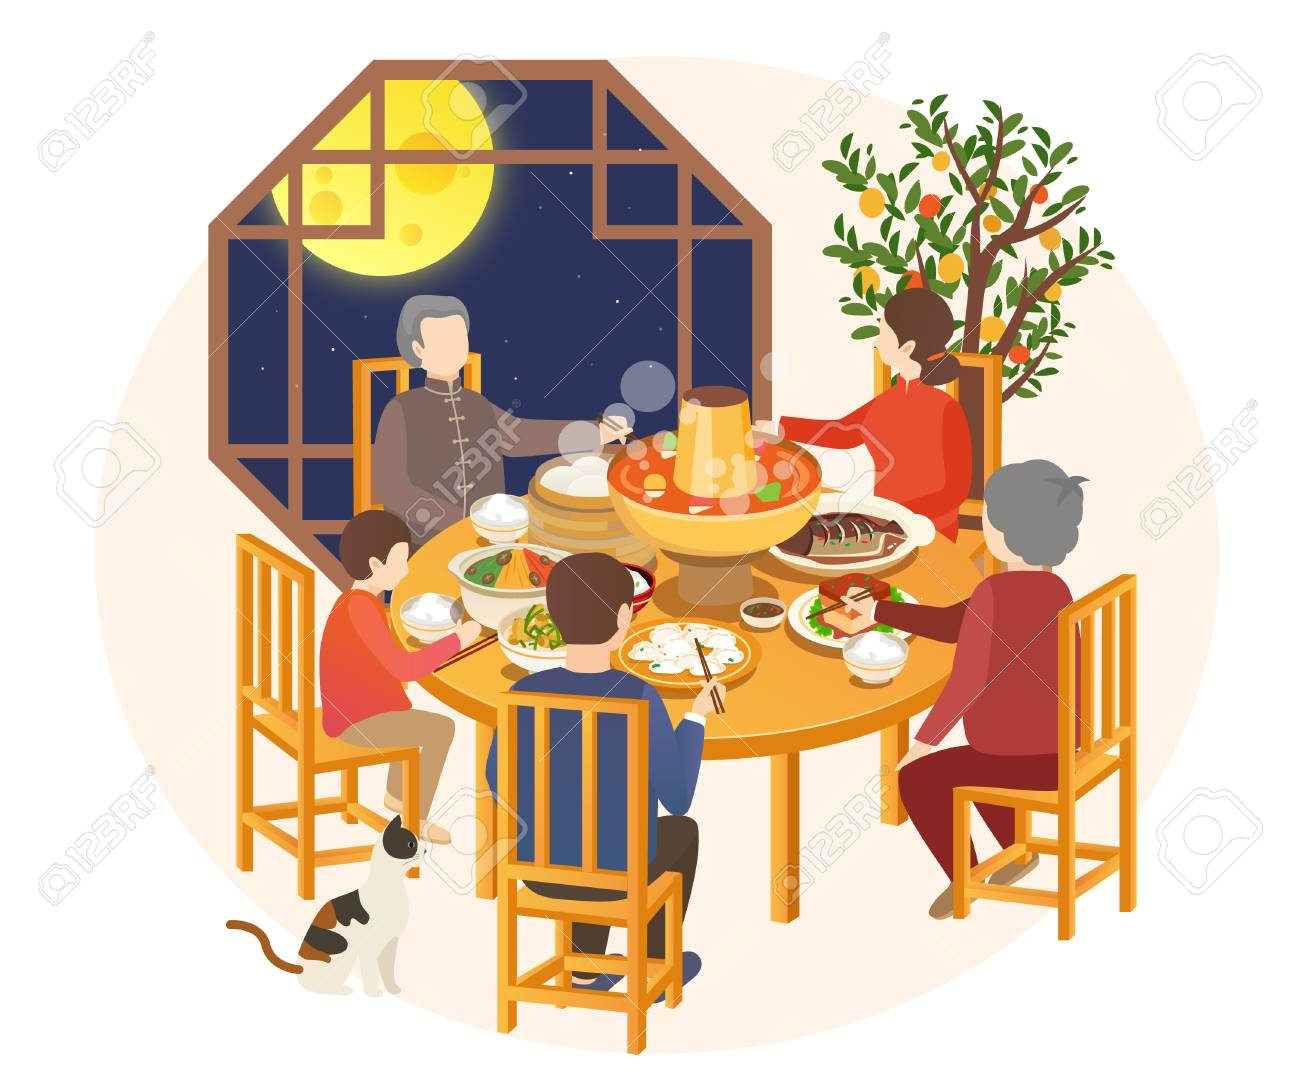 2019 New Year's Pig Year food dinner - 114465291